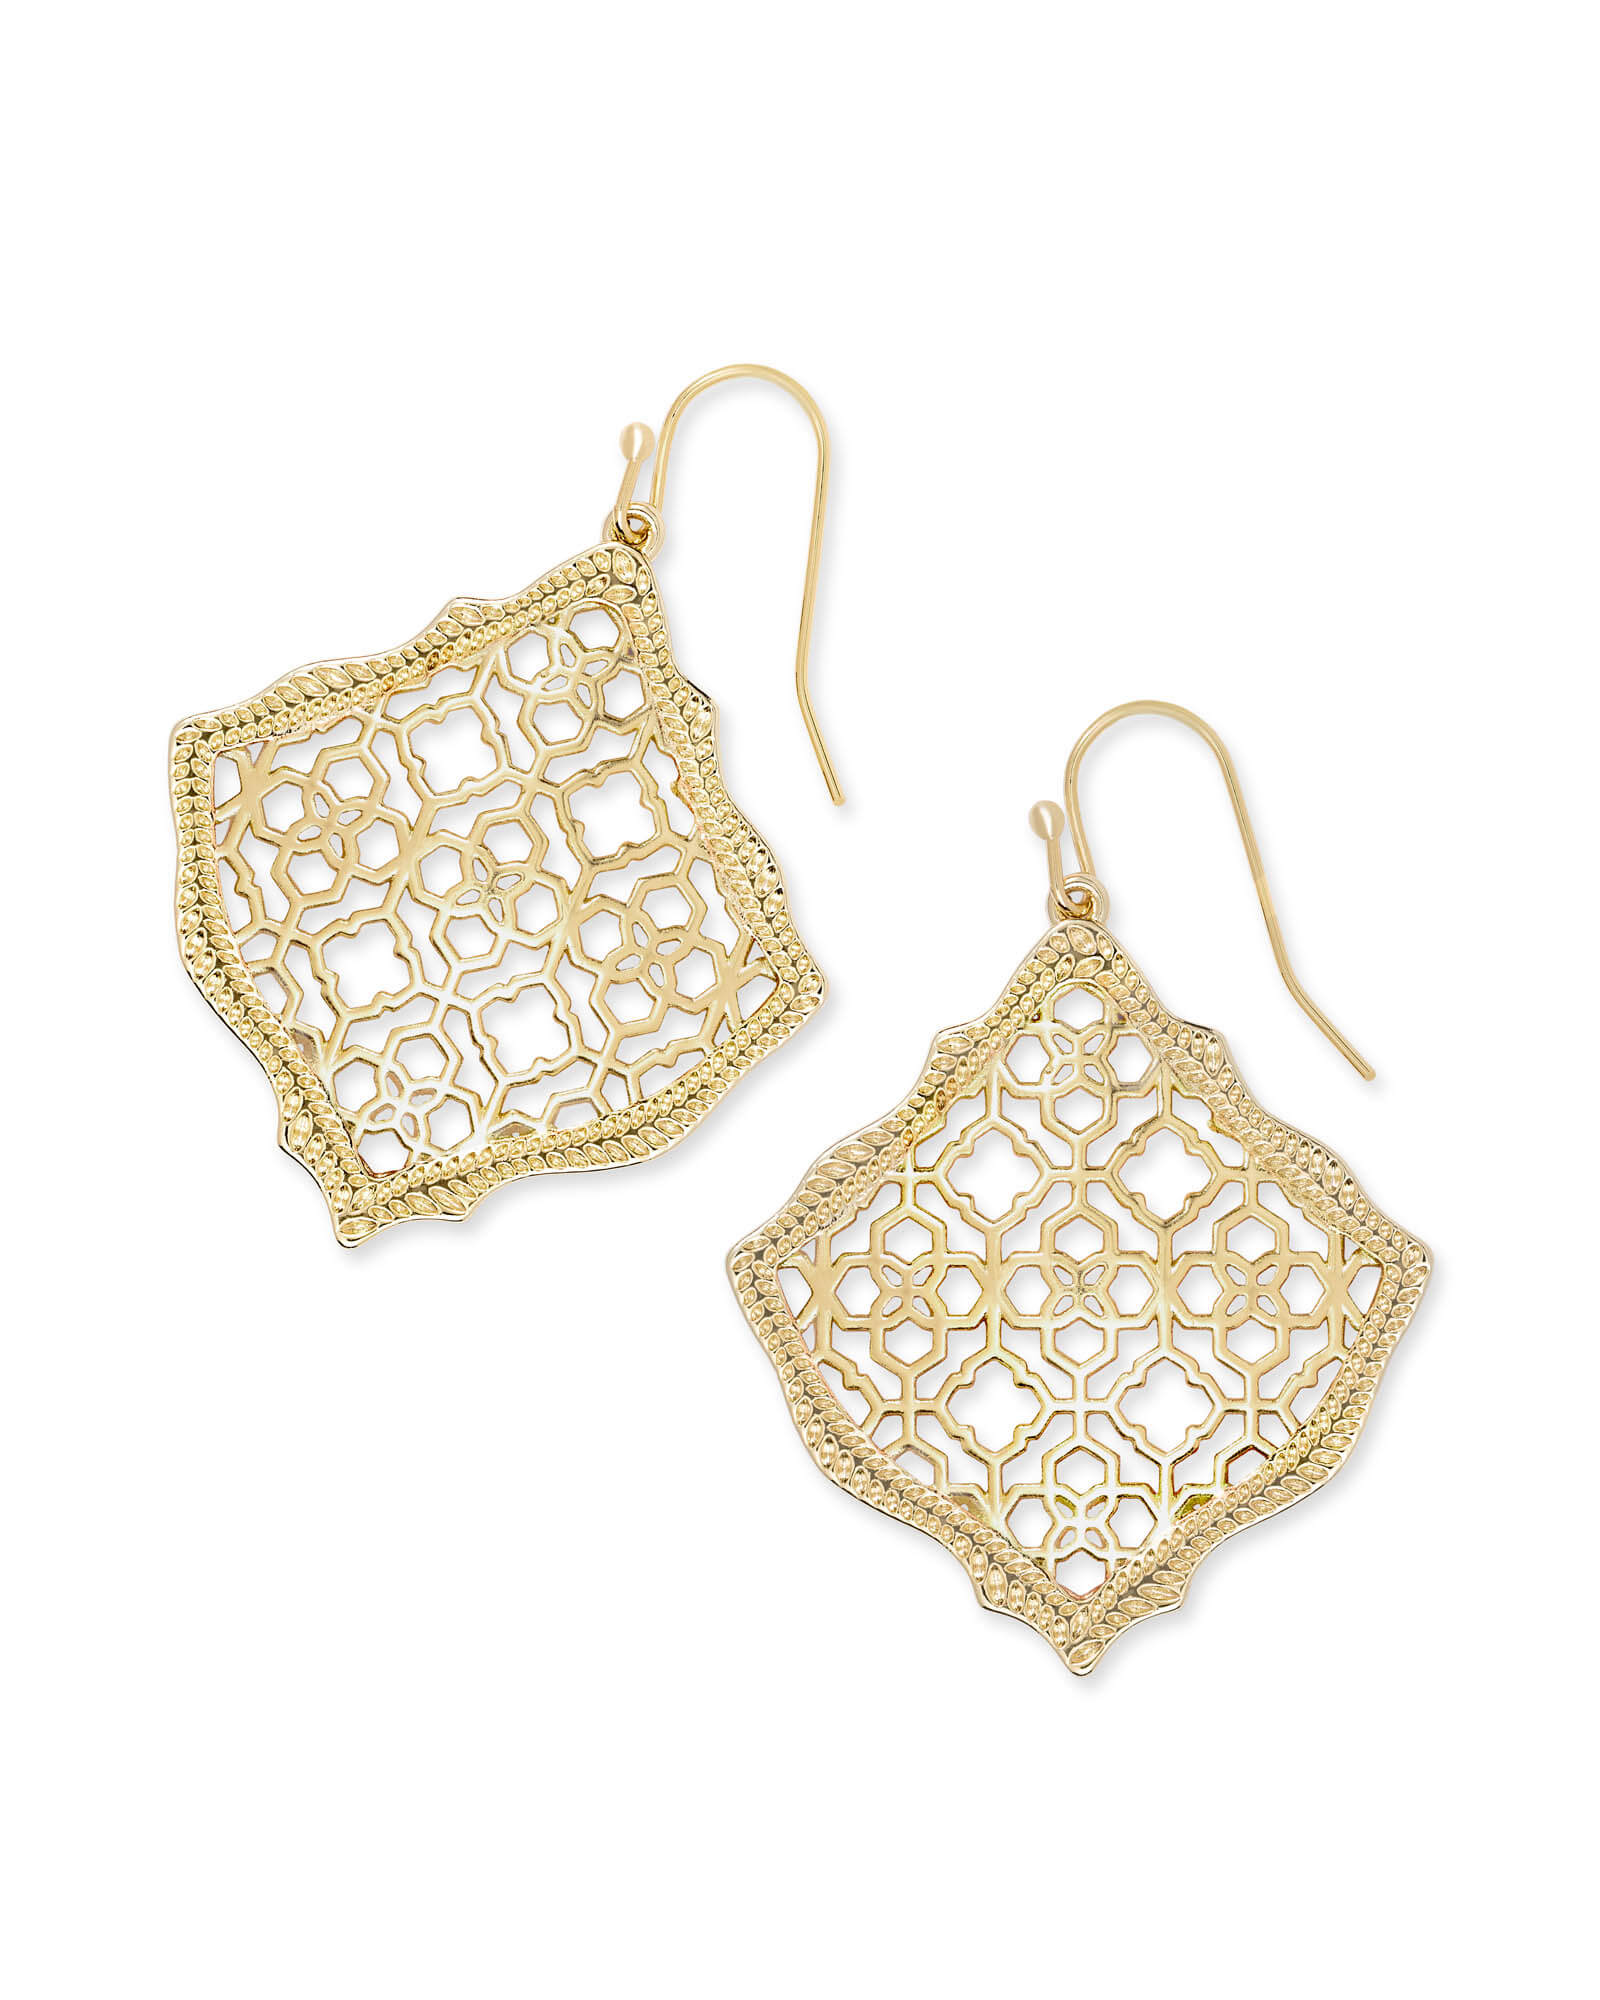 Kirsten Gold Drop Earrings in Gold Filigree Mix